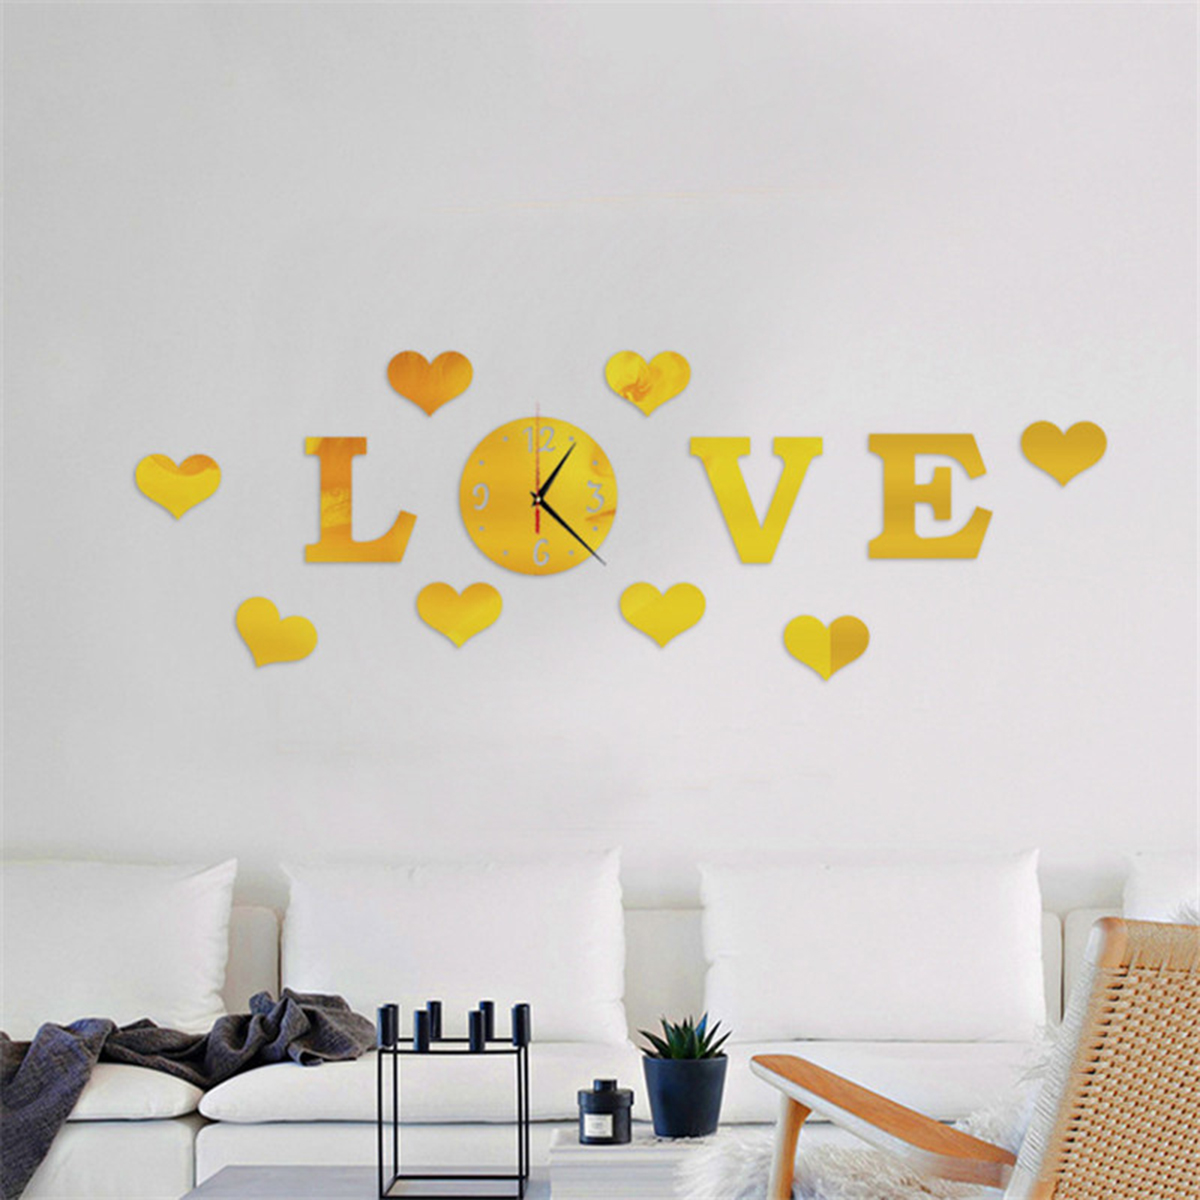 Removable-Mirror-Decal-Art-Mural-Wall-Stickers-Home-Decor-DIY-Room-Decoration thumbnail 20